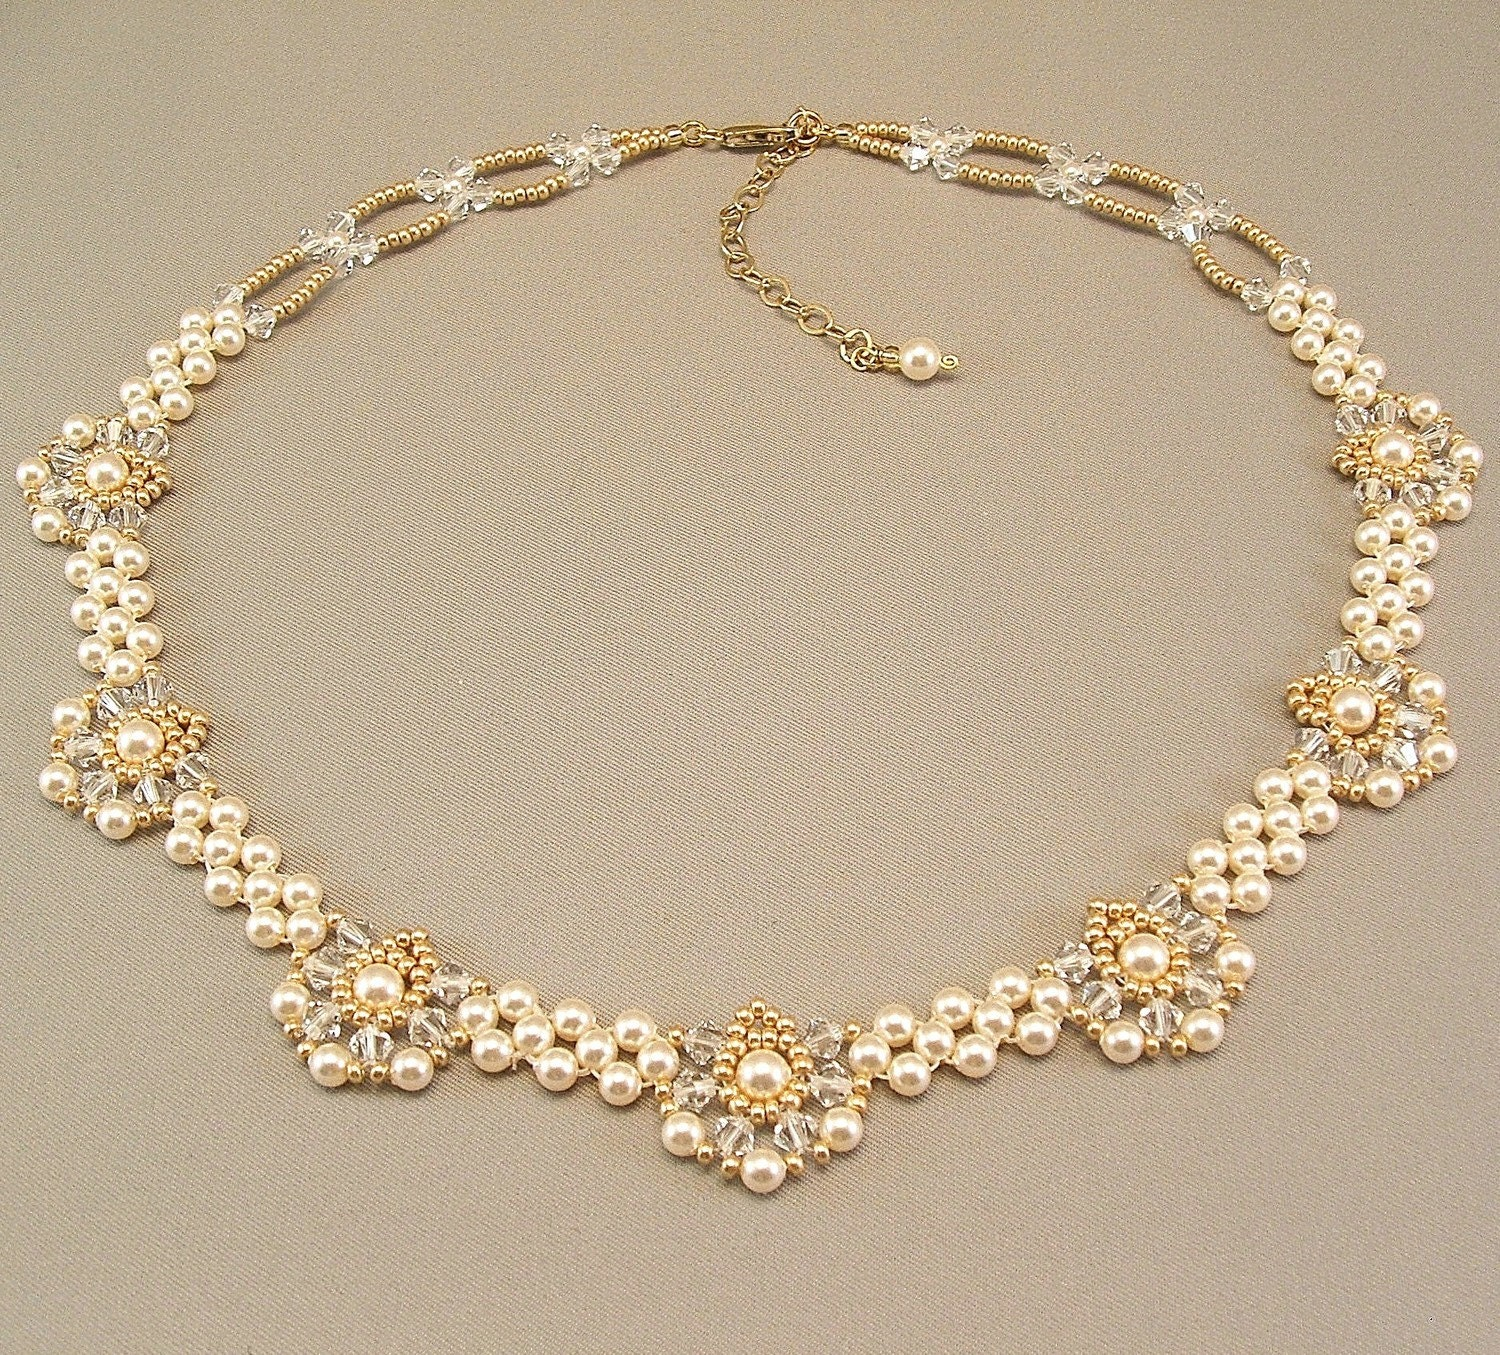 Regal Elegance Woven  Bridal Necklace   Ivory Pearls by Handwired from etsy.com